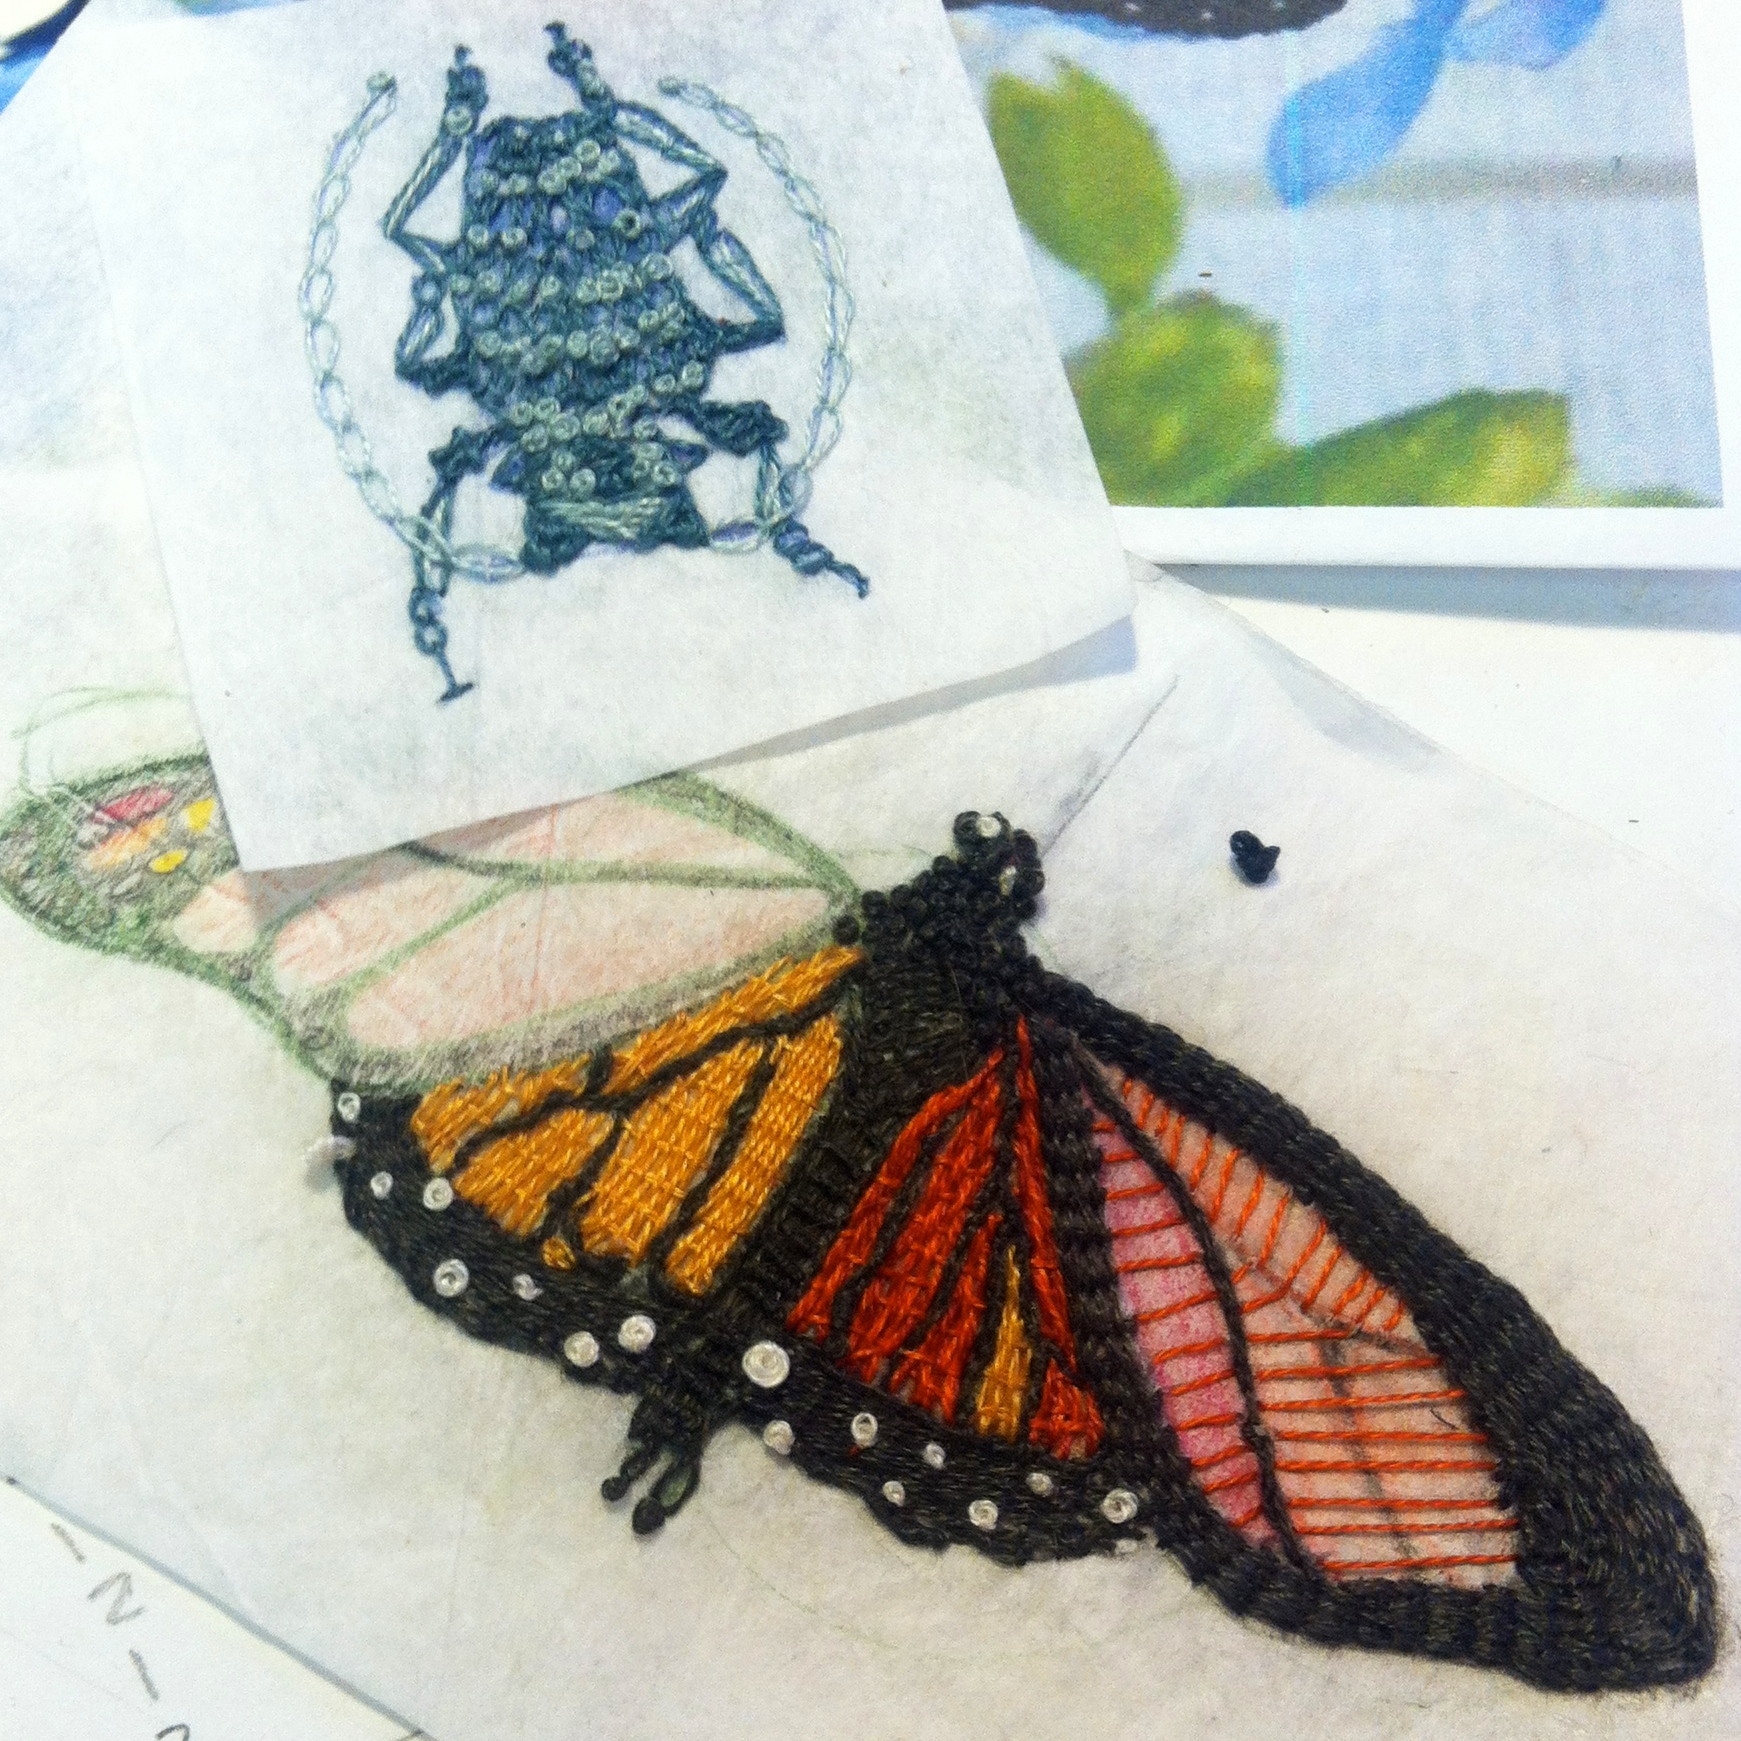 in process - stitching bugs